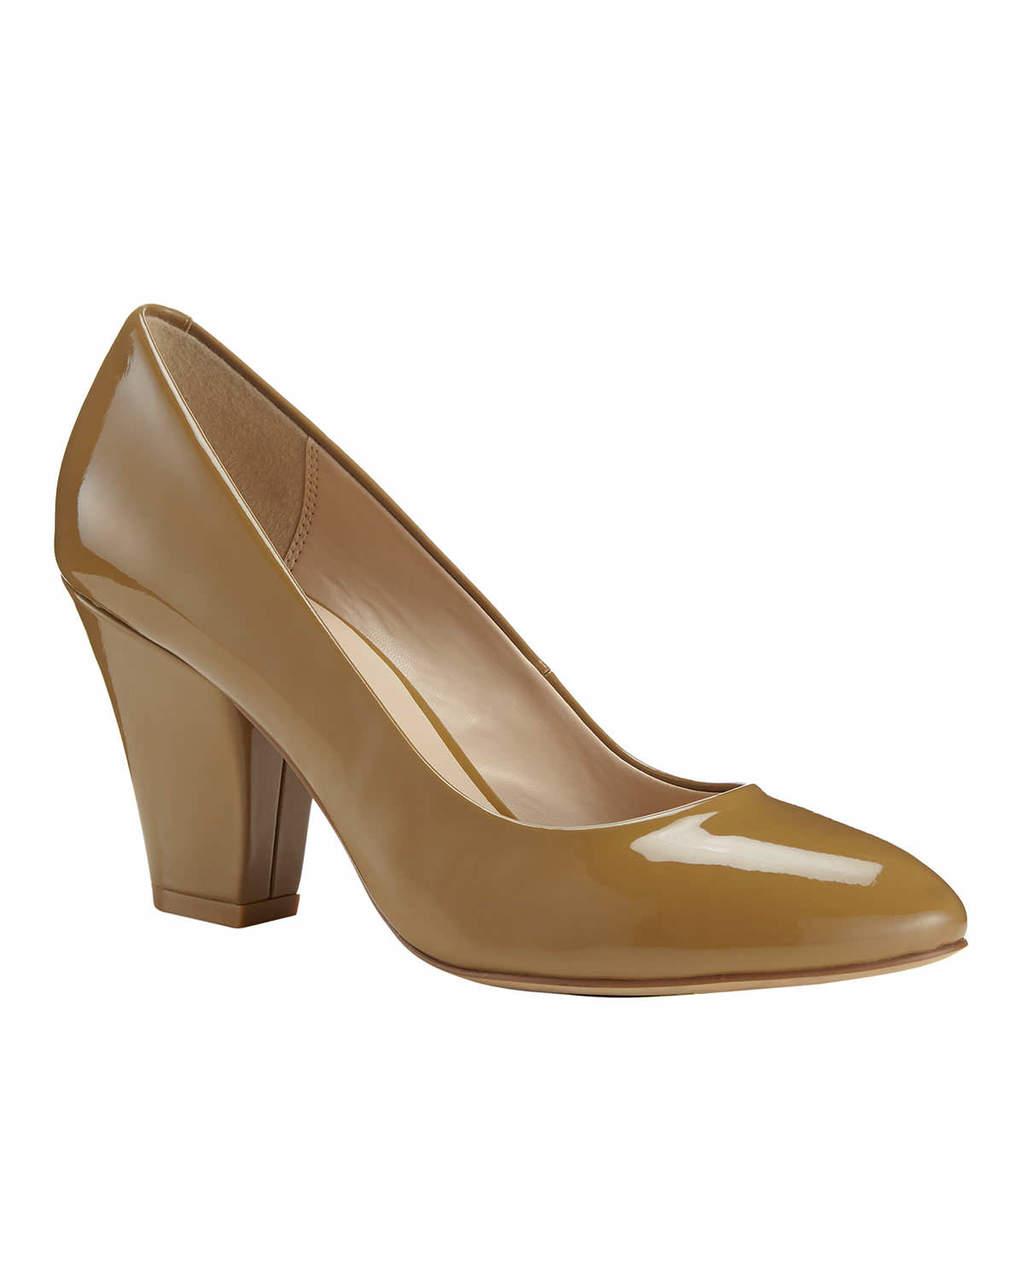 Amari Patent Leather Court - predominant colour: khaki; occasions: work, creative work; material: leather; heel height: high; heel: block; toe: round toe; style: courts; finish: patent; pattern: plain; season: s/s 2016; wardrobe: investment